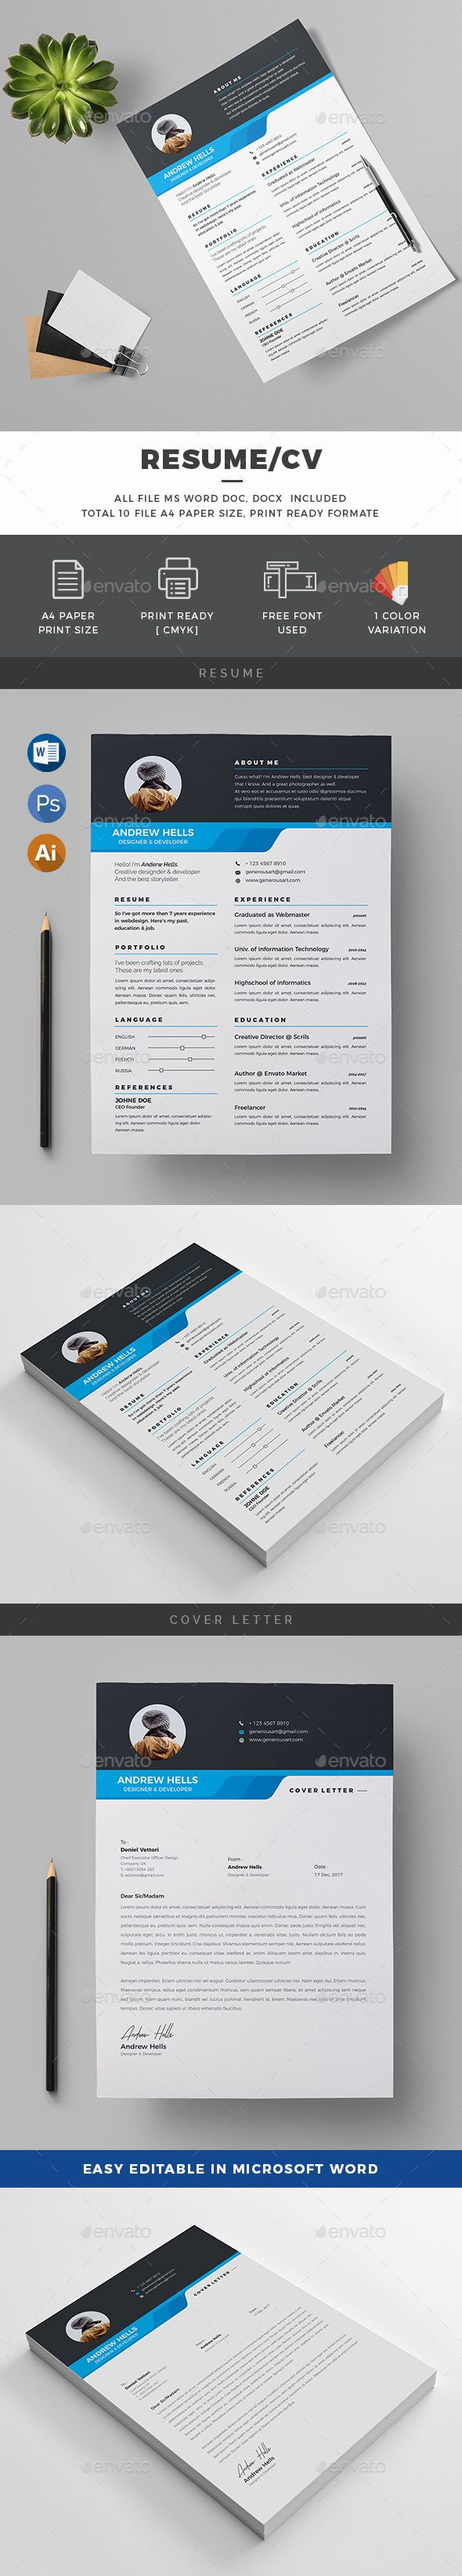 2259 best visit card cv web design images on pinterest